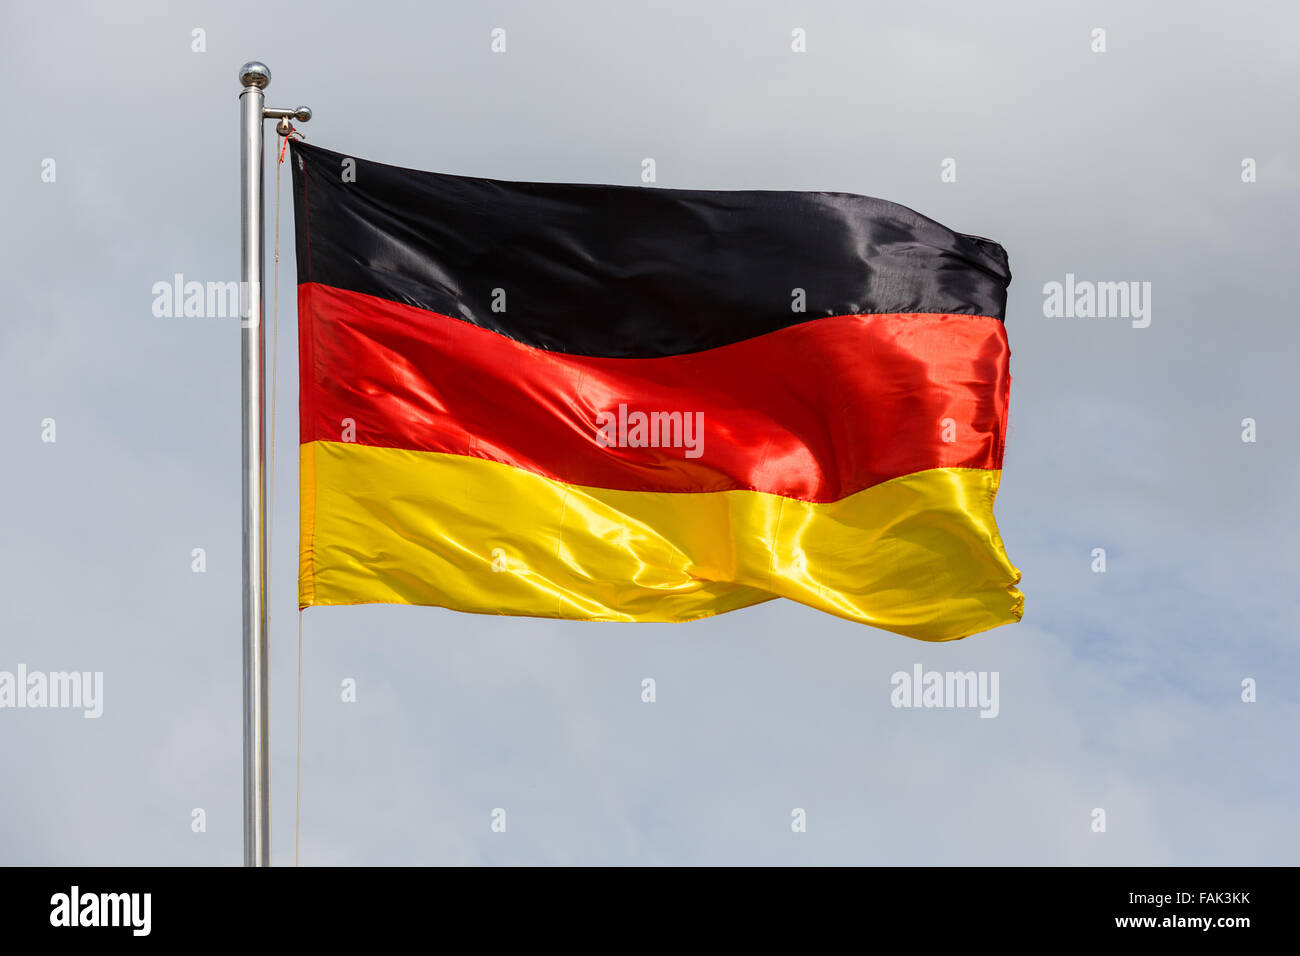 German Flag waving in the wind - Stock Image